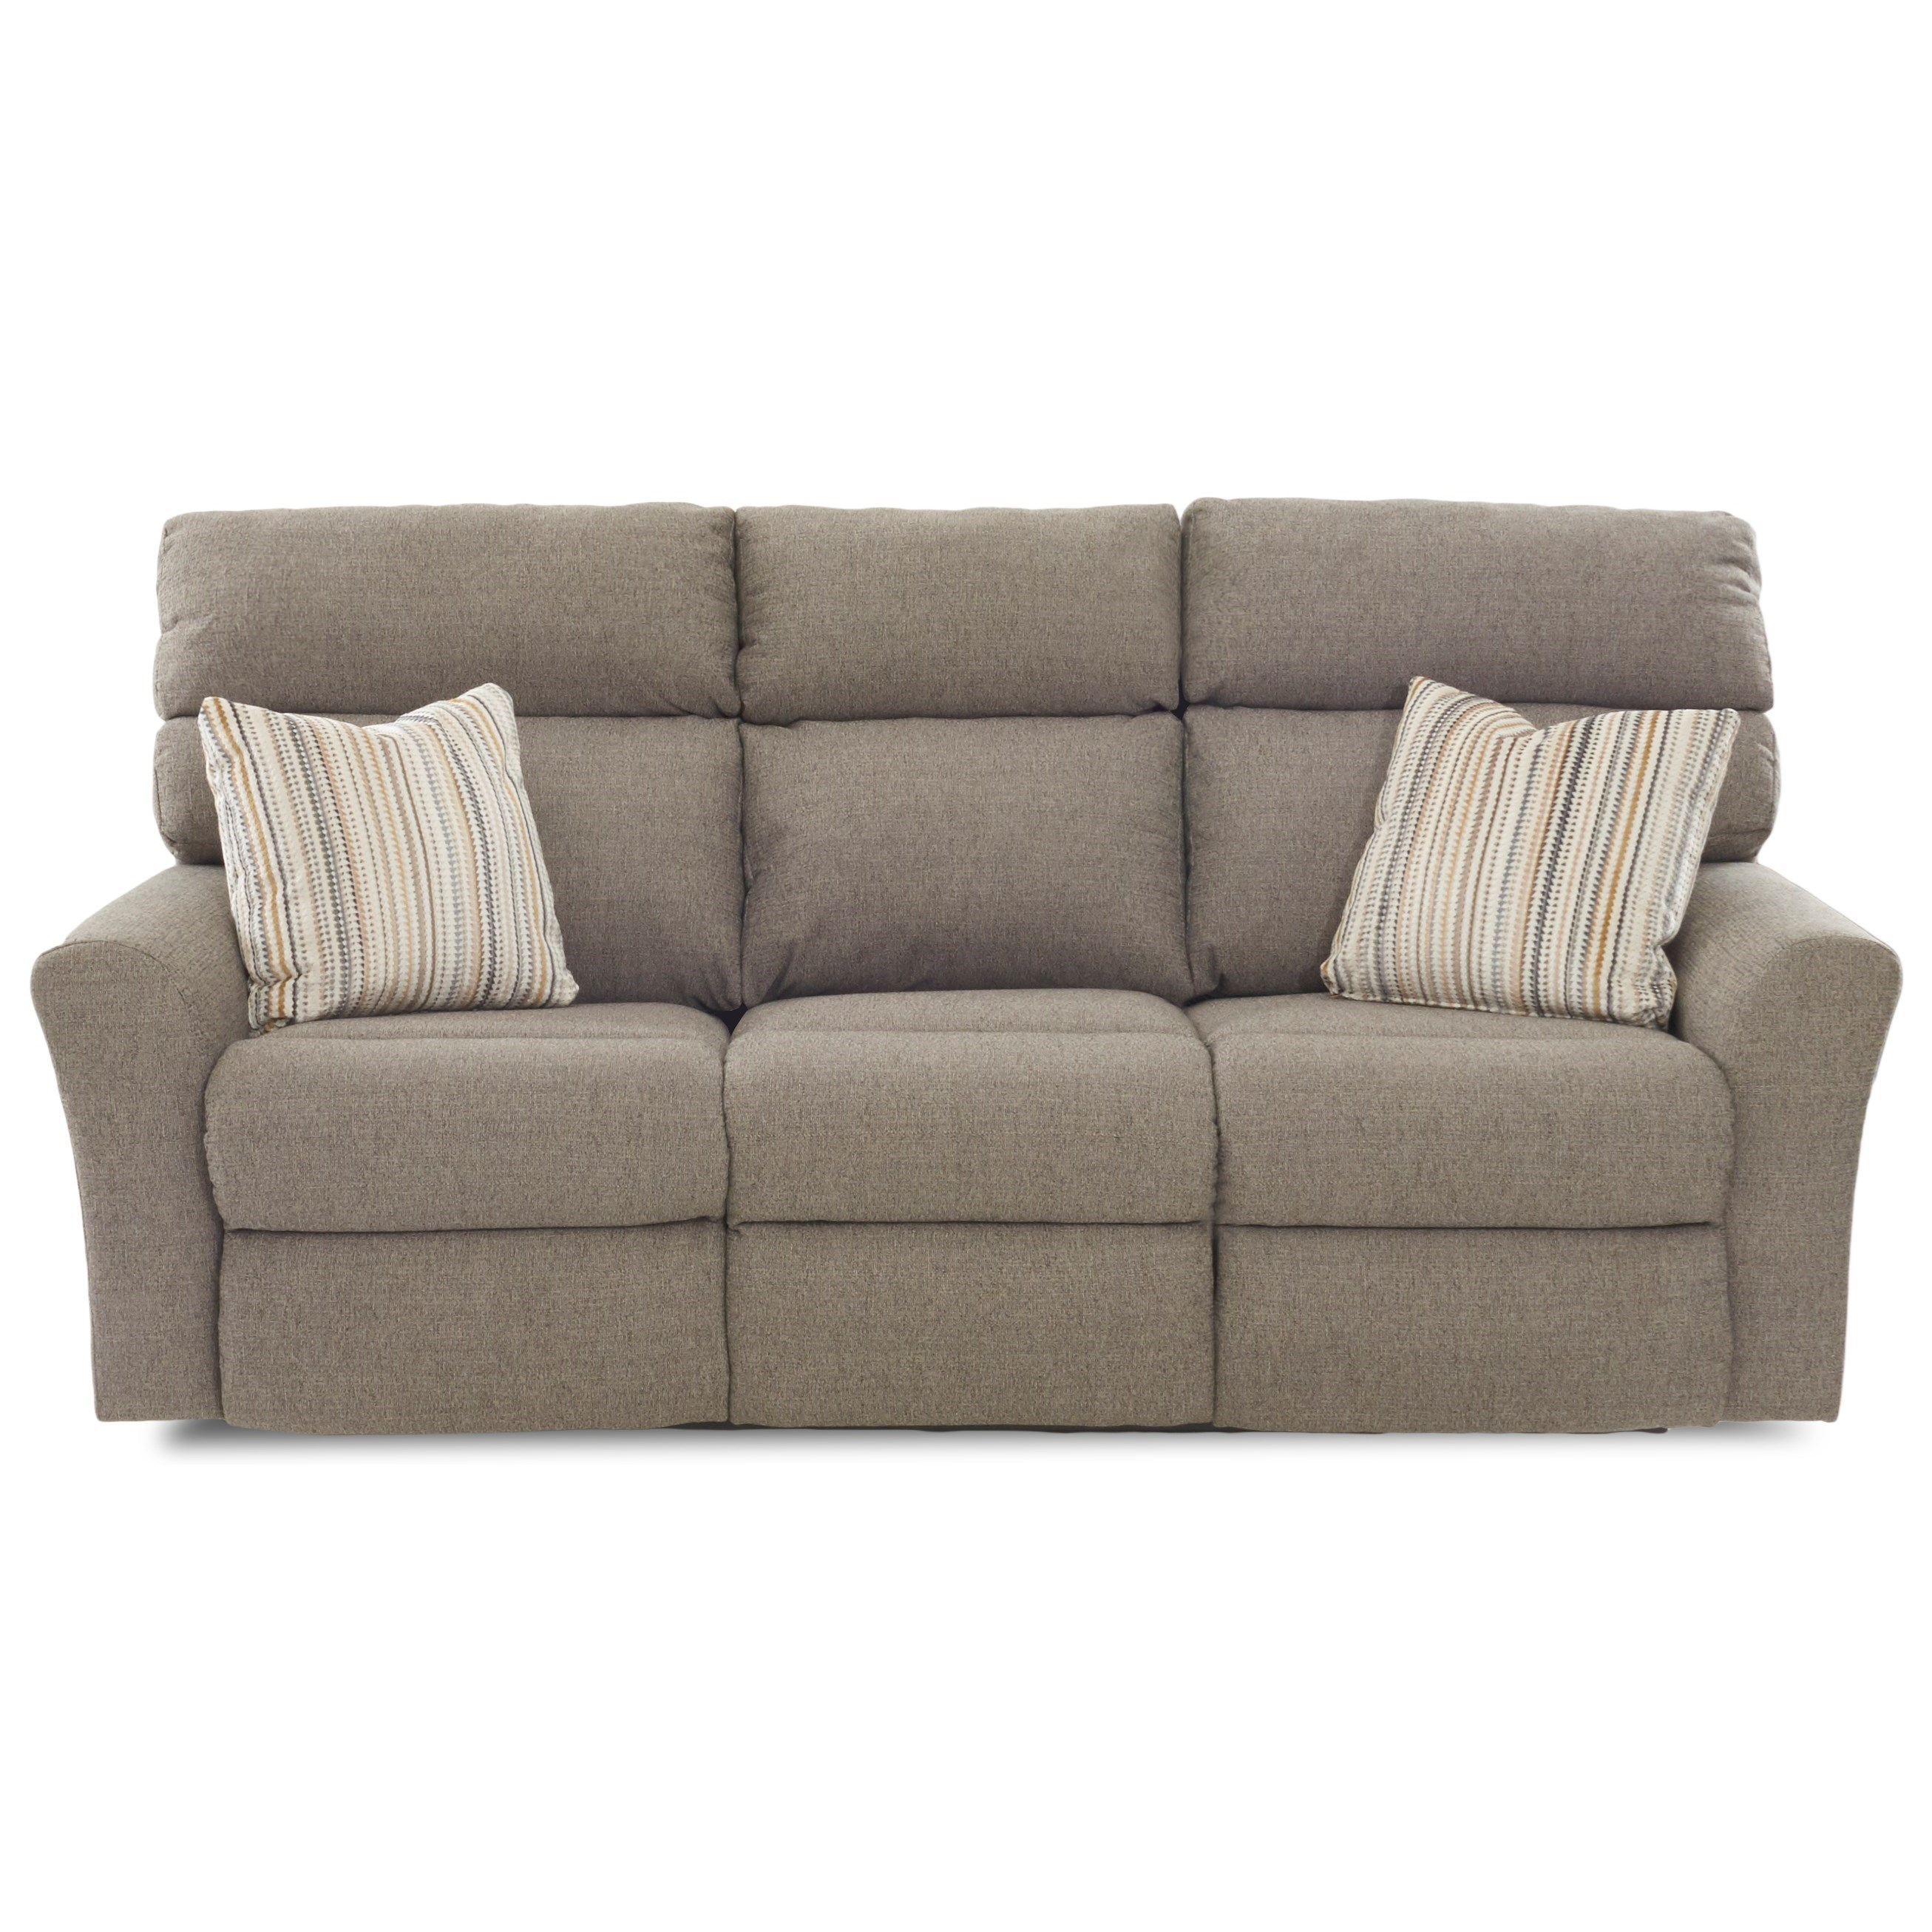 Klaussner Xavier Casual Three Recliner Sofa With Two Power Recliners And  Toss Pillows